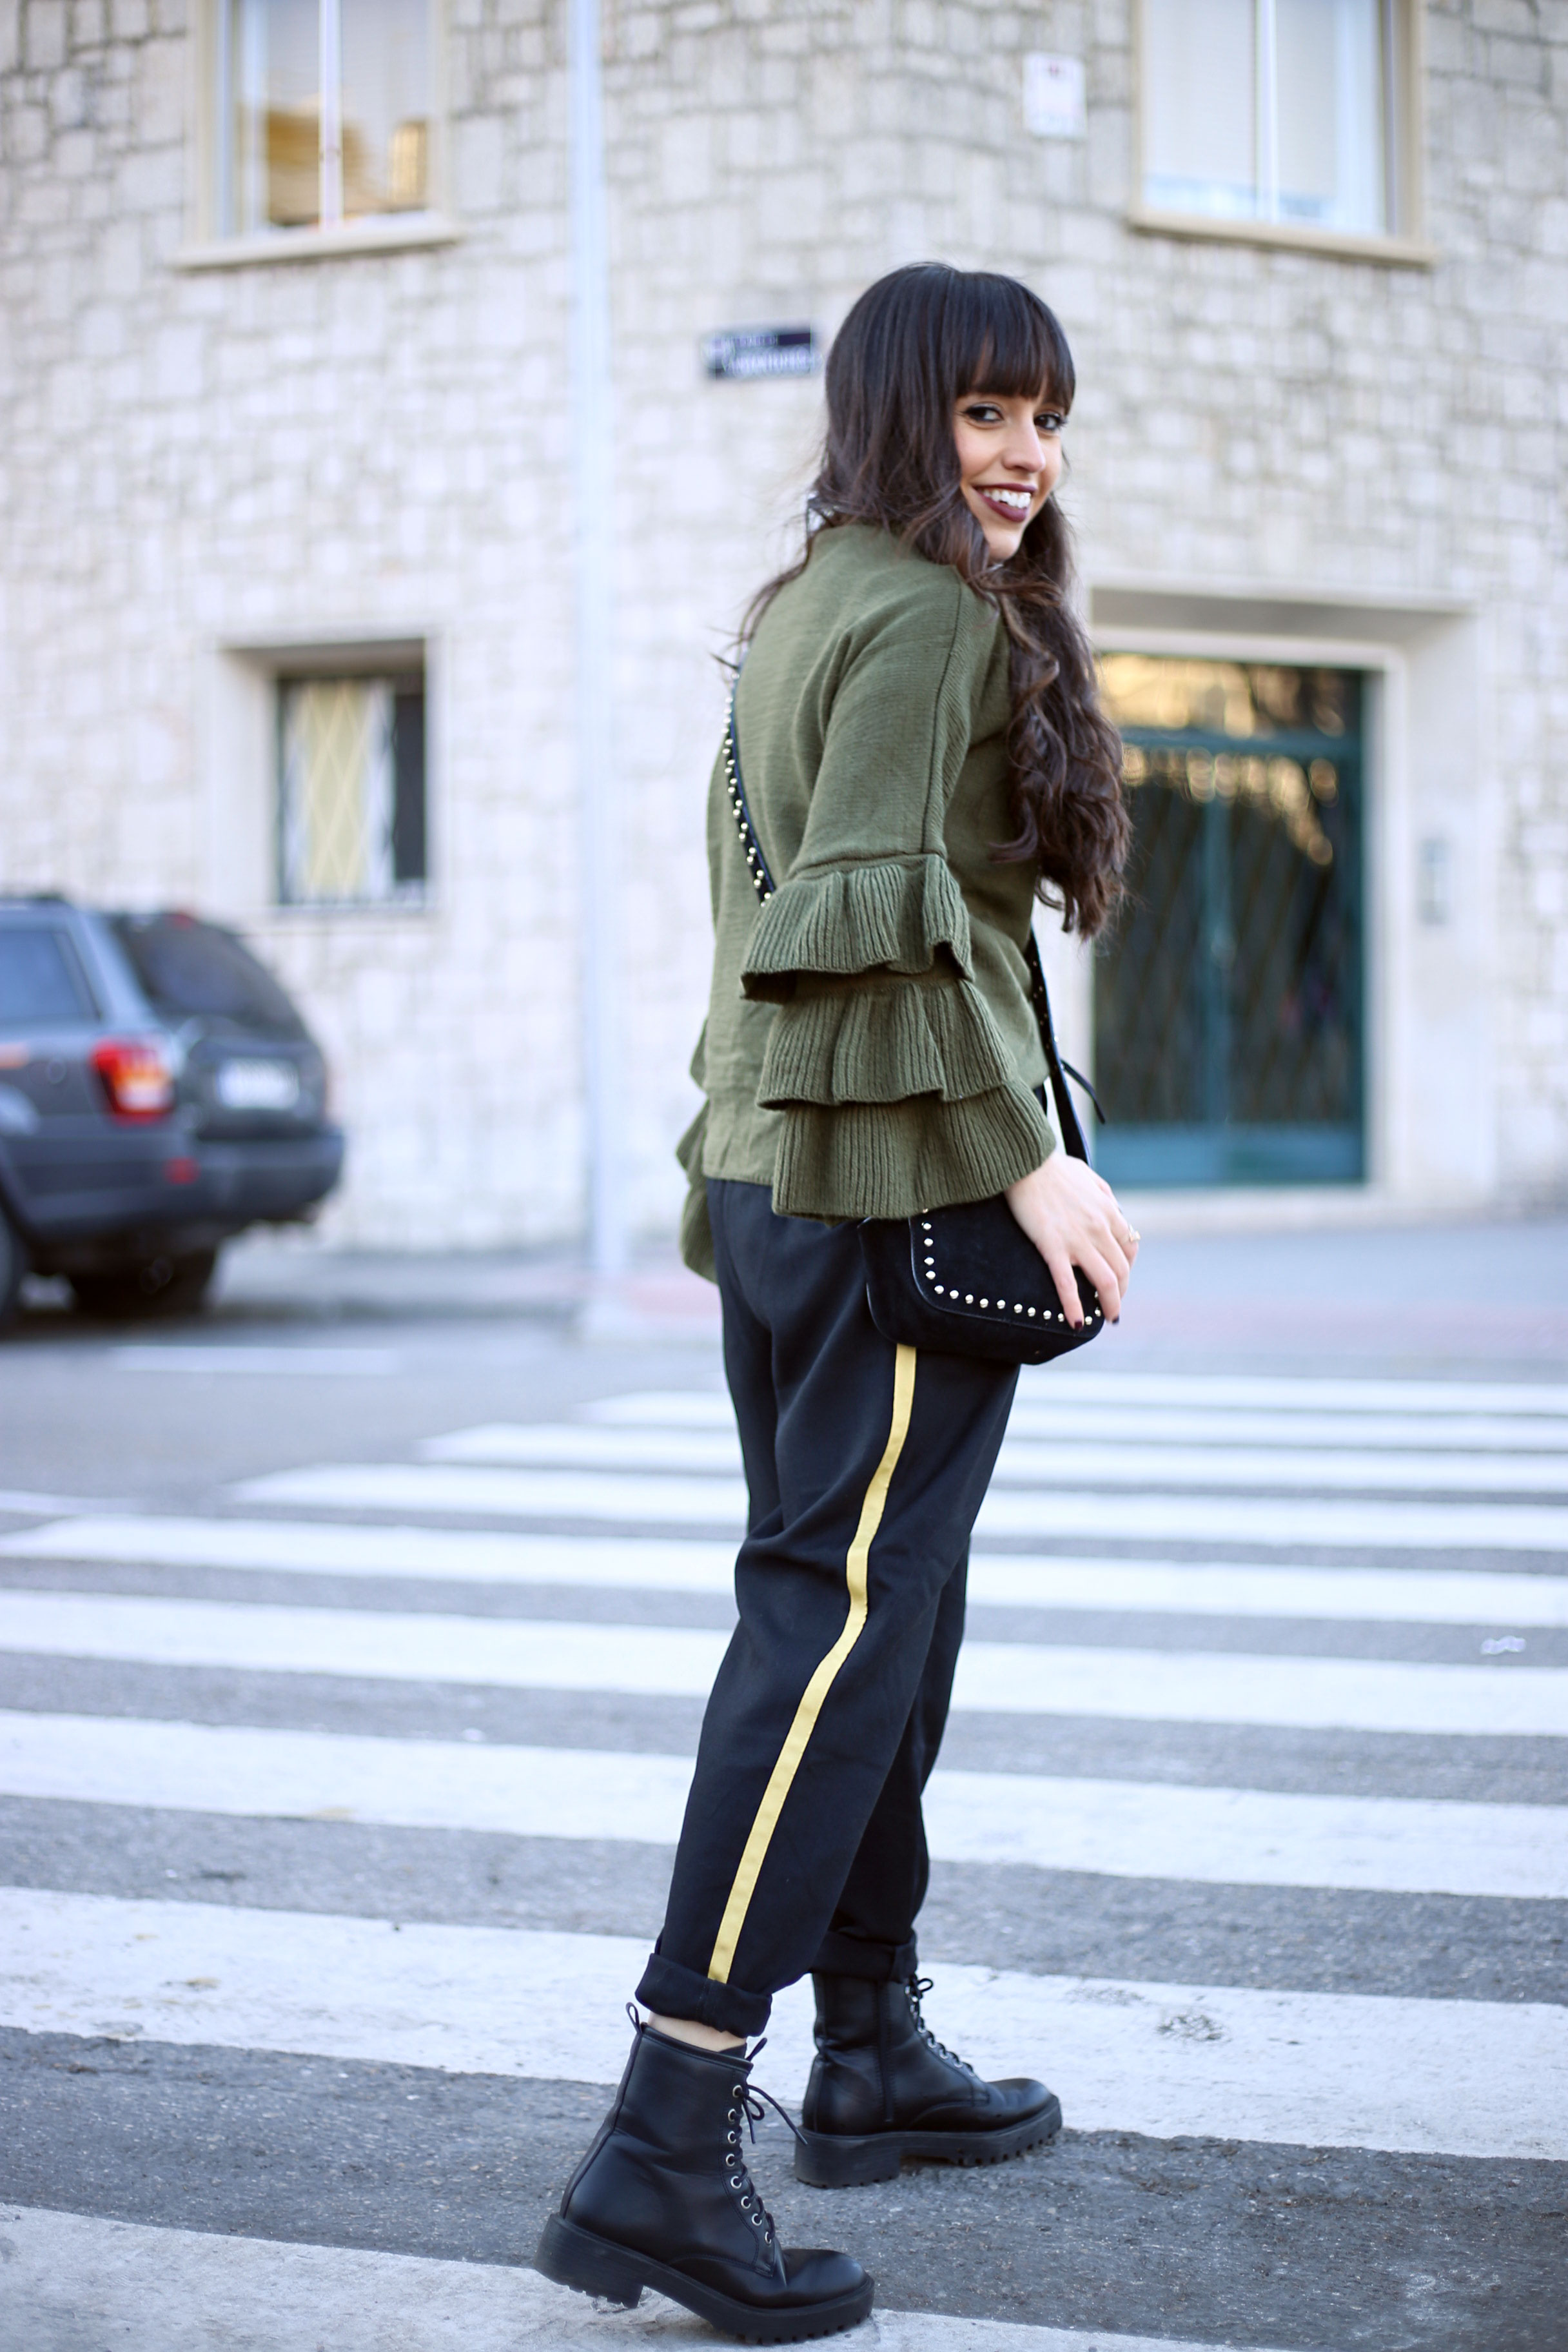 flounces sweater, street style, winter outfit, jogger pants